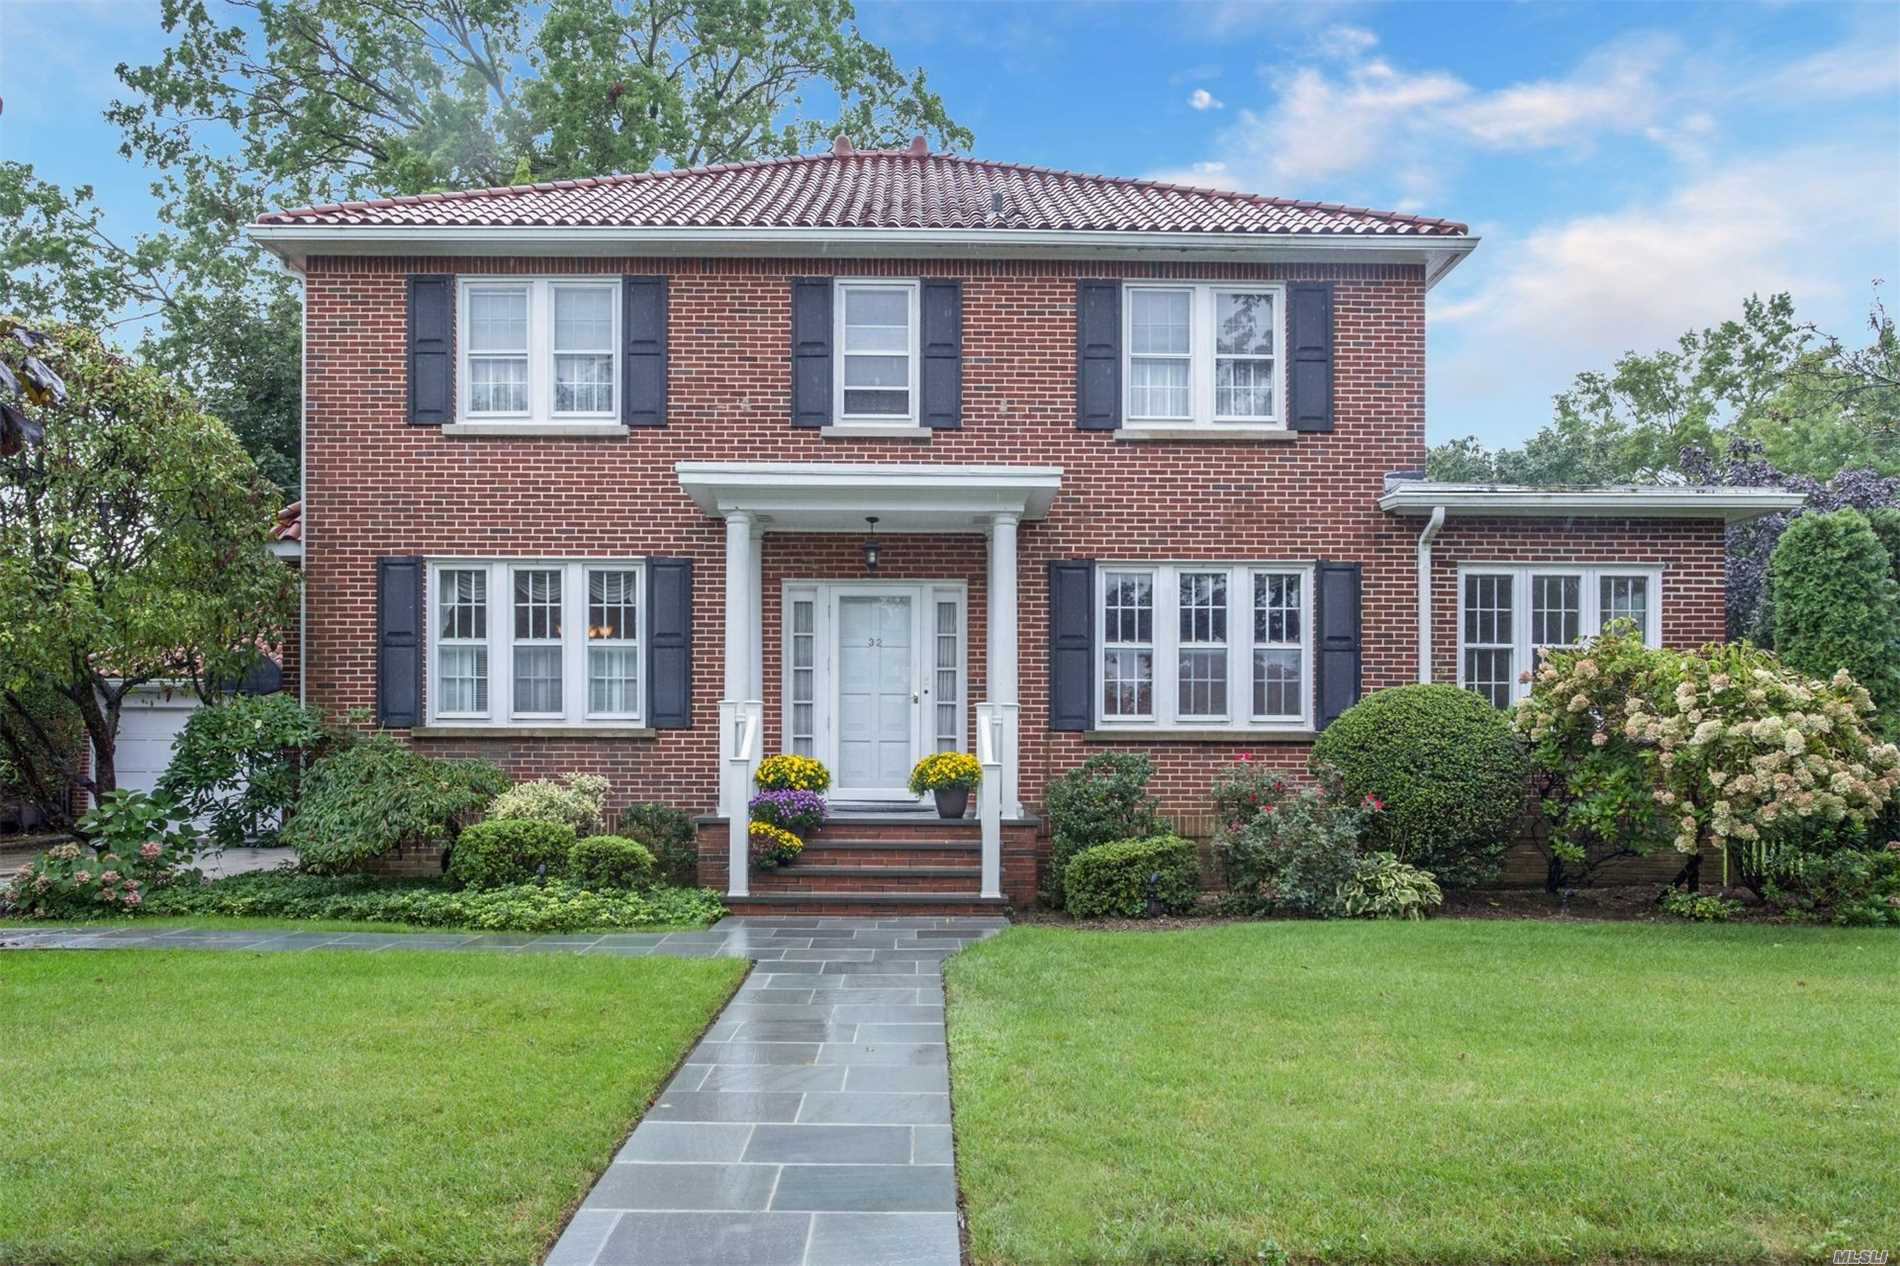 Gracious & Elegant Brick Ctr. Hall Colonial Located In The Bryn Mawr Section Of Rvc! Inviting Foyer, Sprawling Main Level, L/R W/Wood Burning F/P, Elegant D/R W/Original Stain Glass, Huge Updated Eik, Side Family Room, Library Area, BR, Full Bath, 2nd Level Boasts Spacious Master En-Suite, Plus 4 Additional Queen Size BR. Updated Hall Bth.. Finished Recreation Area In Basement, Laundry & Storage. Rear Patio For Entertaining, Large Side Property. Taxes Grieved For 2020/2021. $7, 000 Credit For Taxes